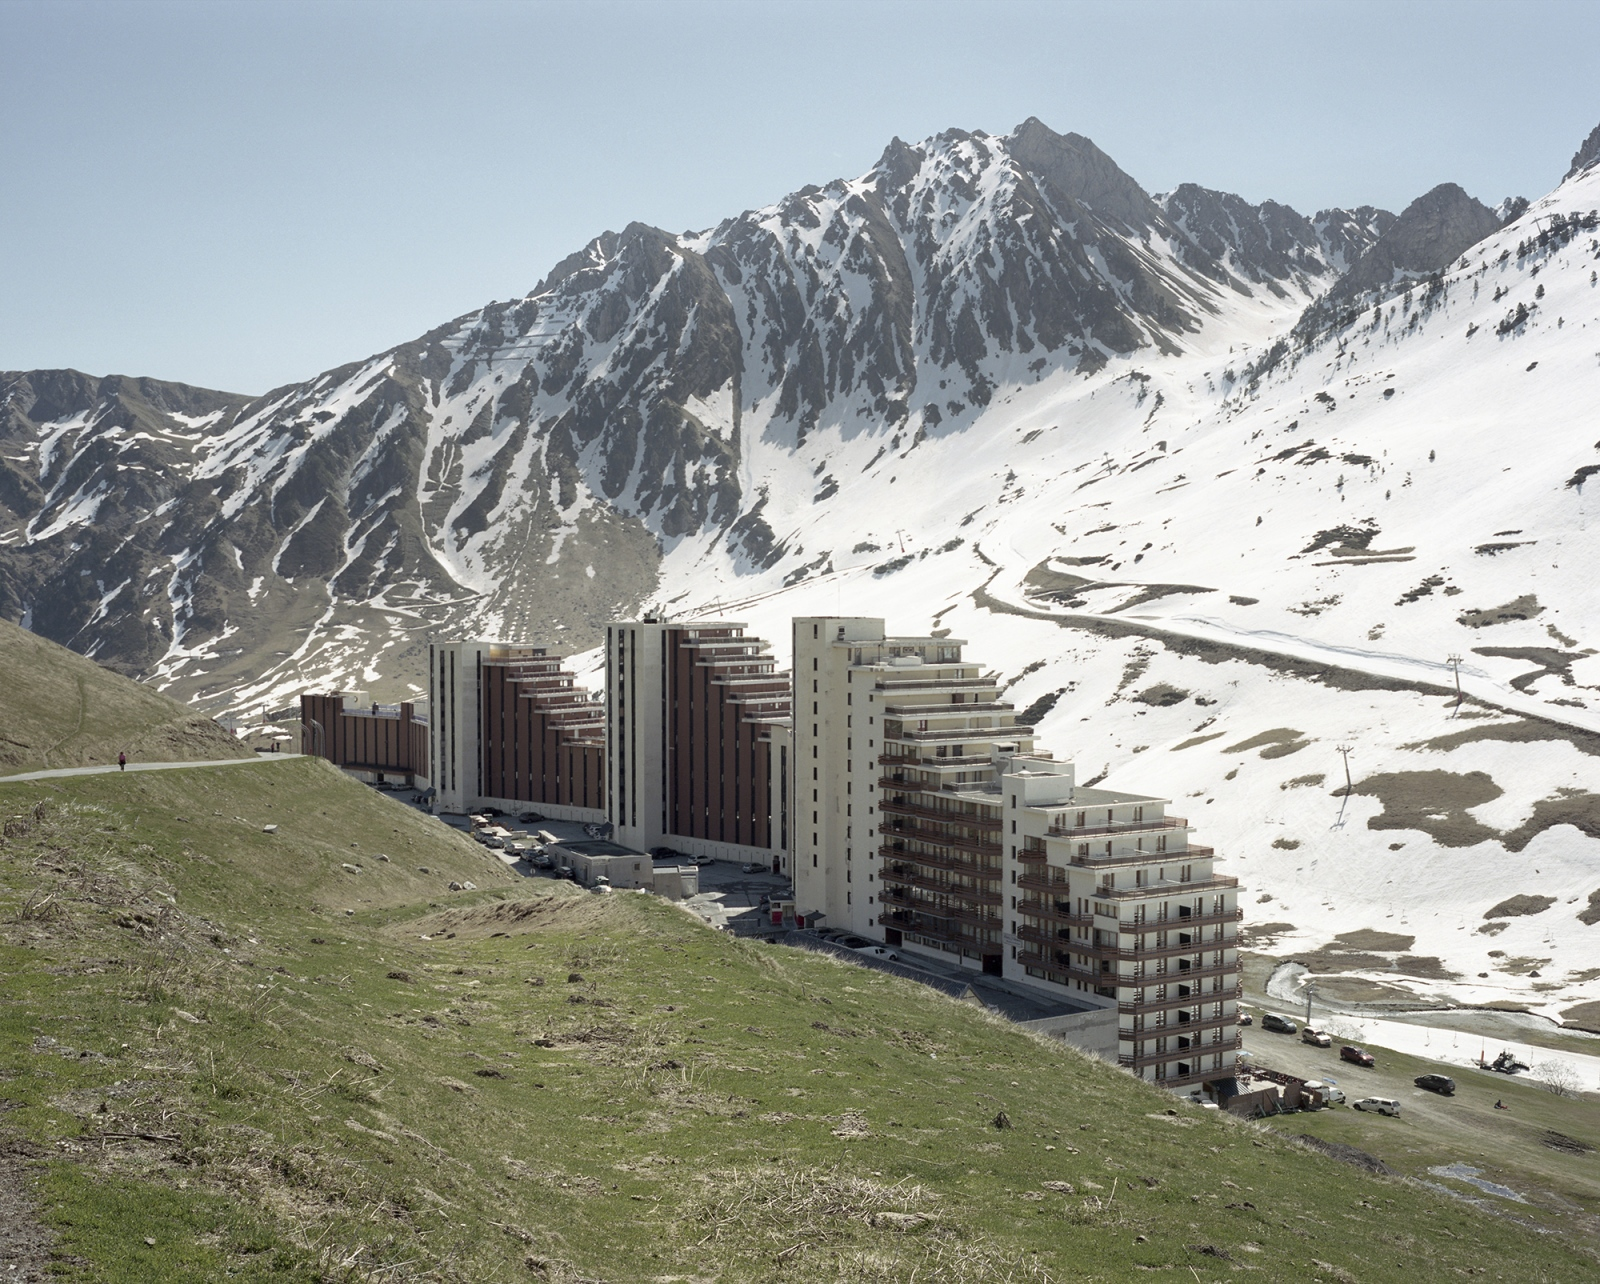 France, La Mongie. A view of a building belonging to a ski resort. According to the European Environment Agency, Europe's mountain regions may suffer some of the most severe impacts of climate change. Increasing temperatures can change snow-cover patterns and lead to water shortages and other problems such as reduced ski tourism.